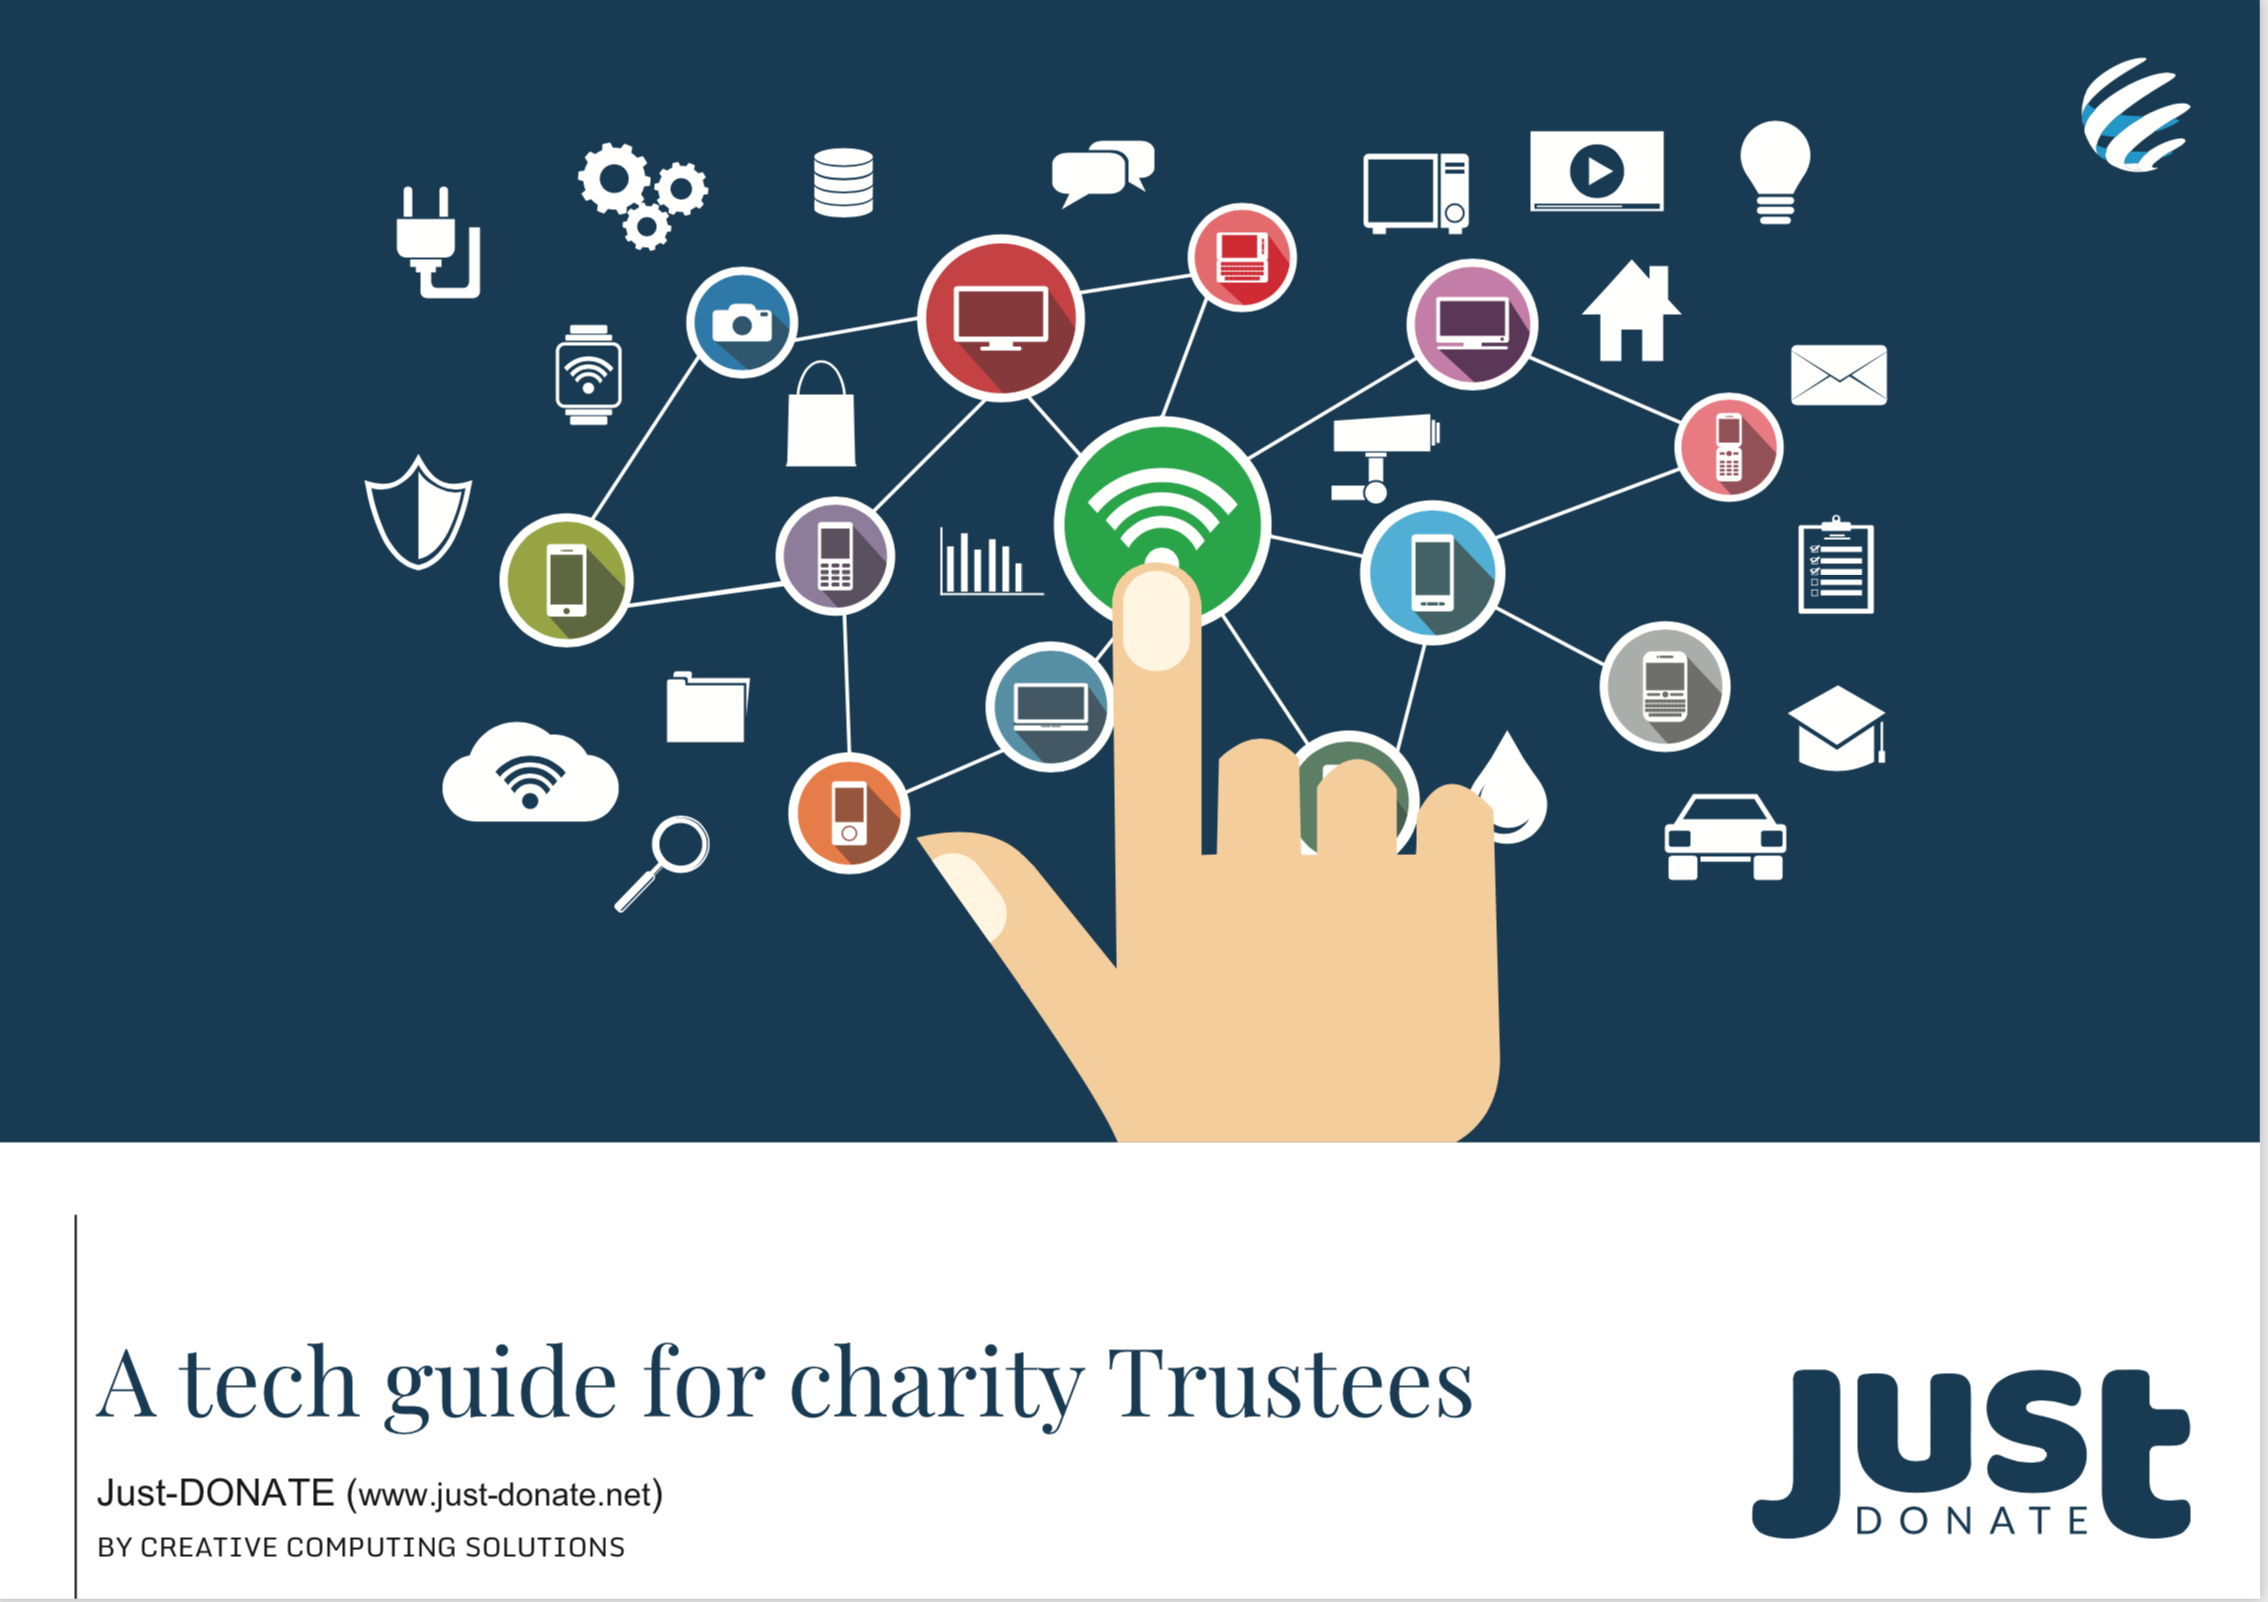 Just Donate - A tech guide for charity trustees